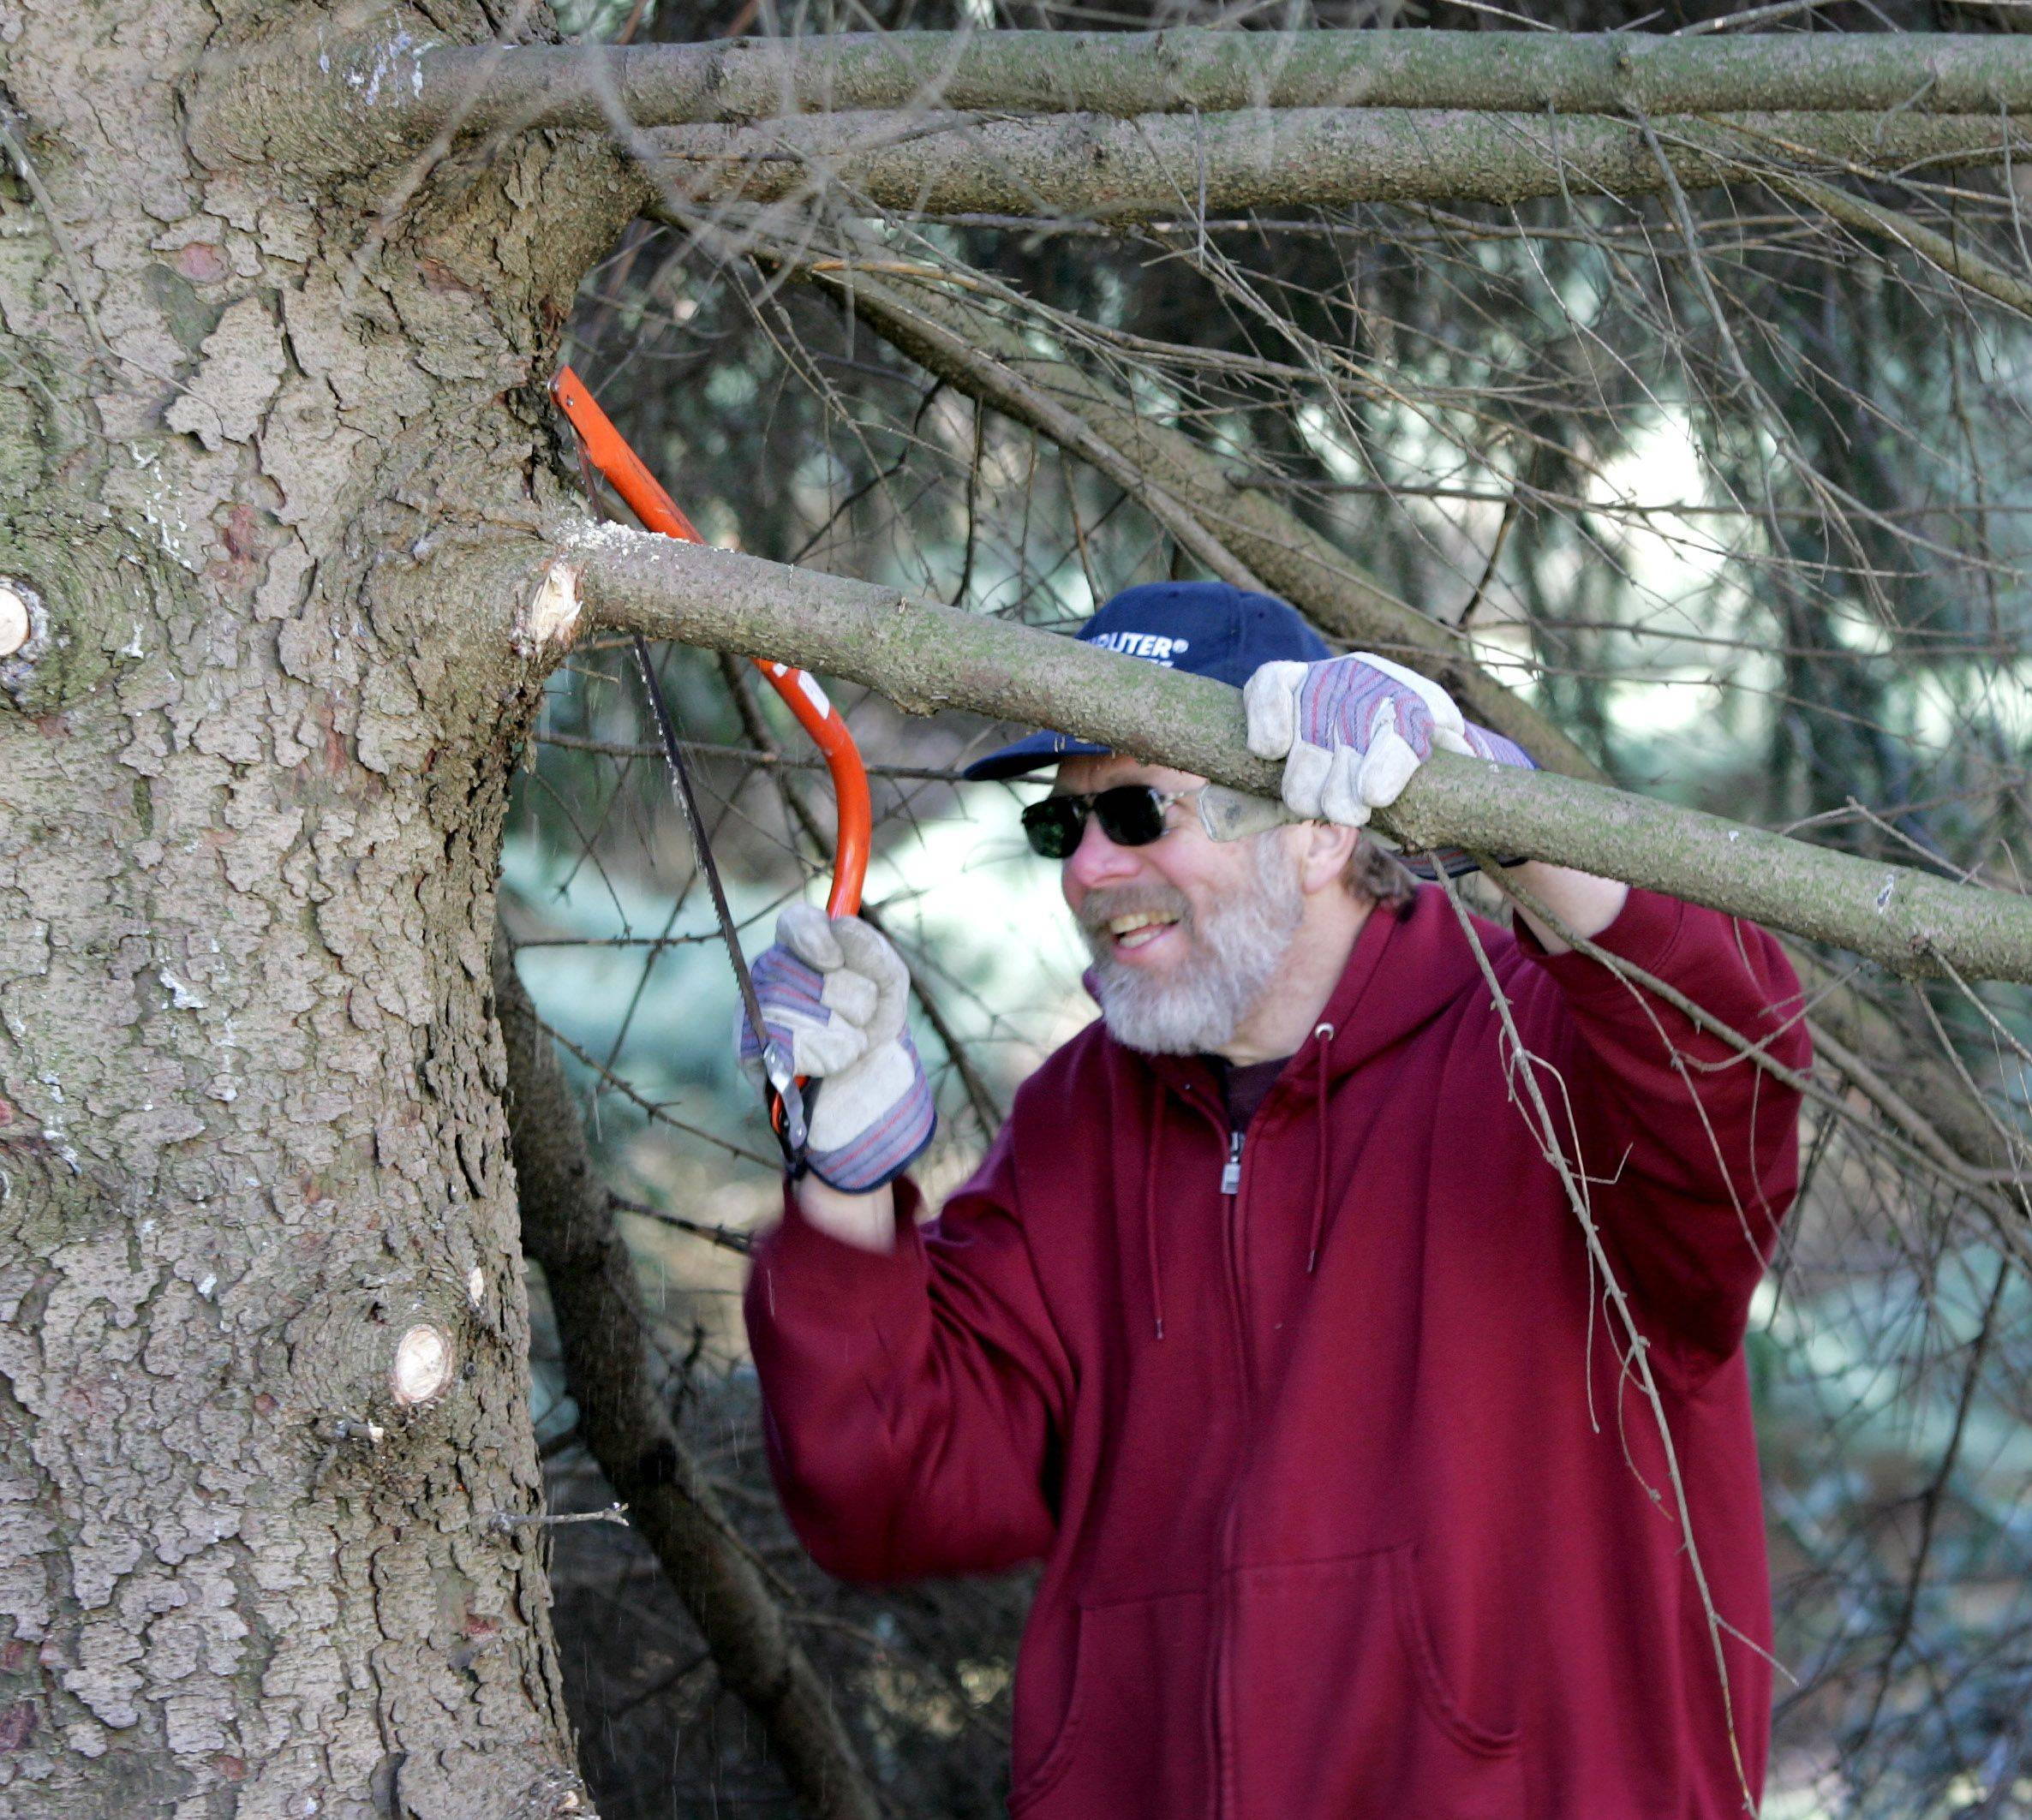 Paul Wissmiller, a software engineer at CA Technologies in Lisle, cuts branches Thursday at St. James Farm Forest Preserve near Warrenville.